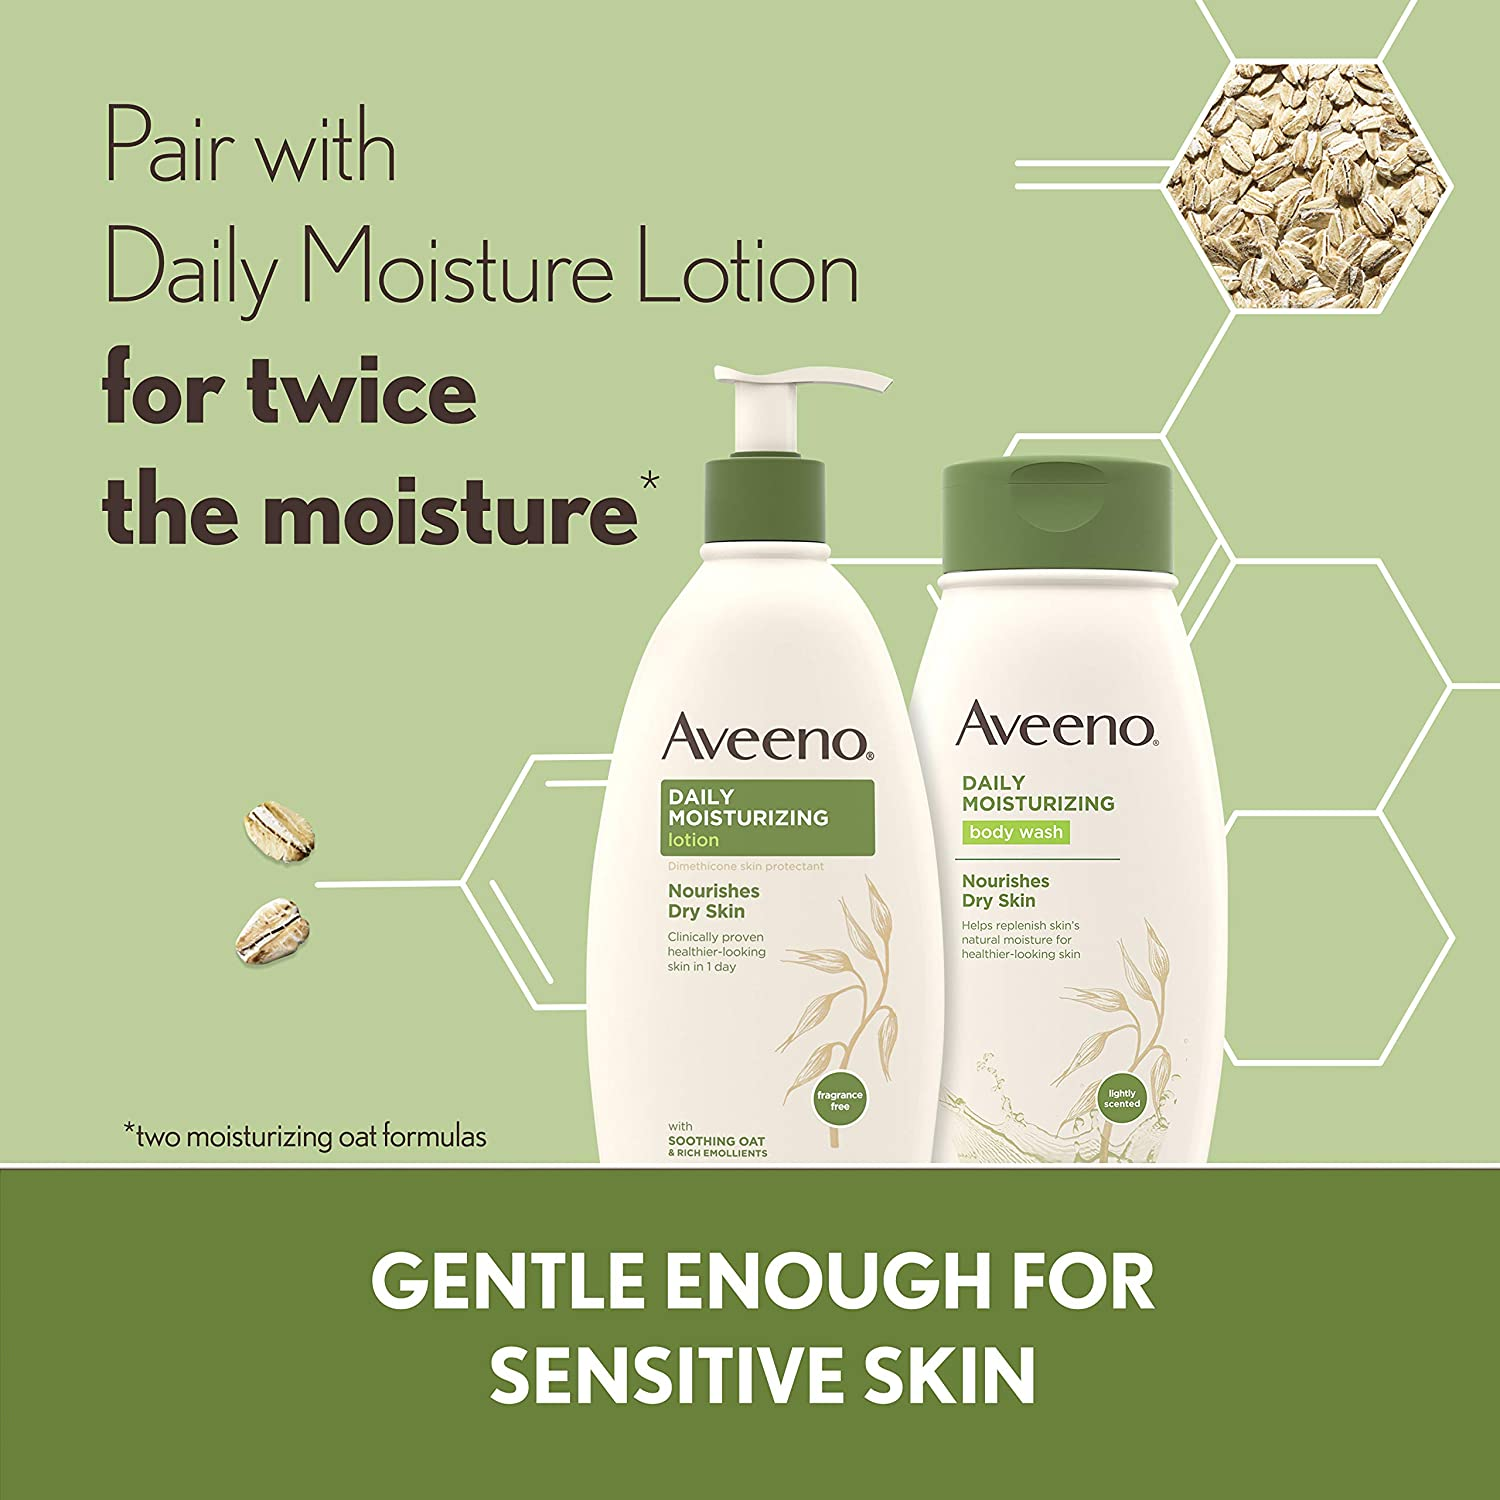 Aveeno Daily Moisturizing Body Wash for Dry Skin with Soothing Oat & Rich Emollients, Creamy Shower Cleanser, Gentle, Soap-Free and Dye-Free, Light Fragrance, 18 fl. oz : Bath And Shower Gels : Beauty